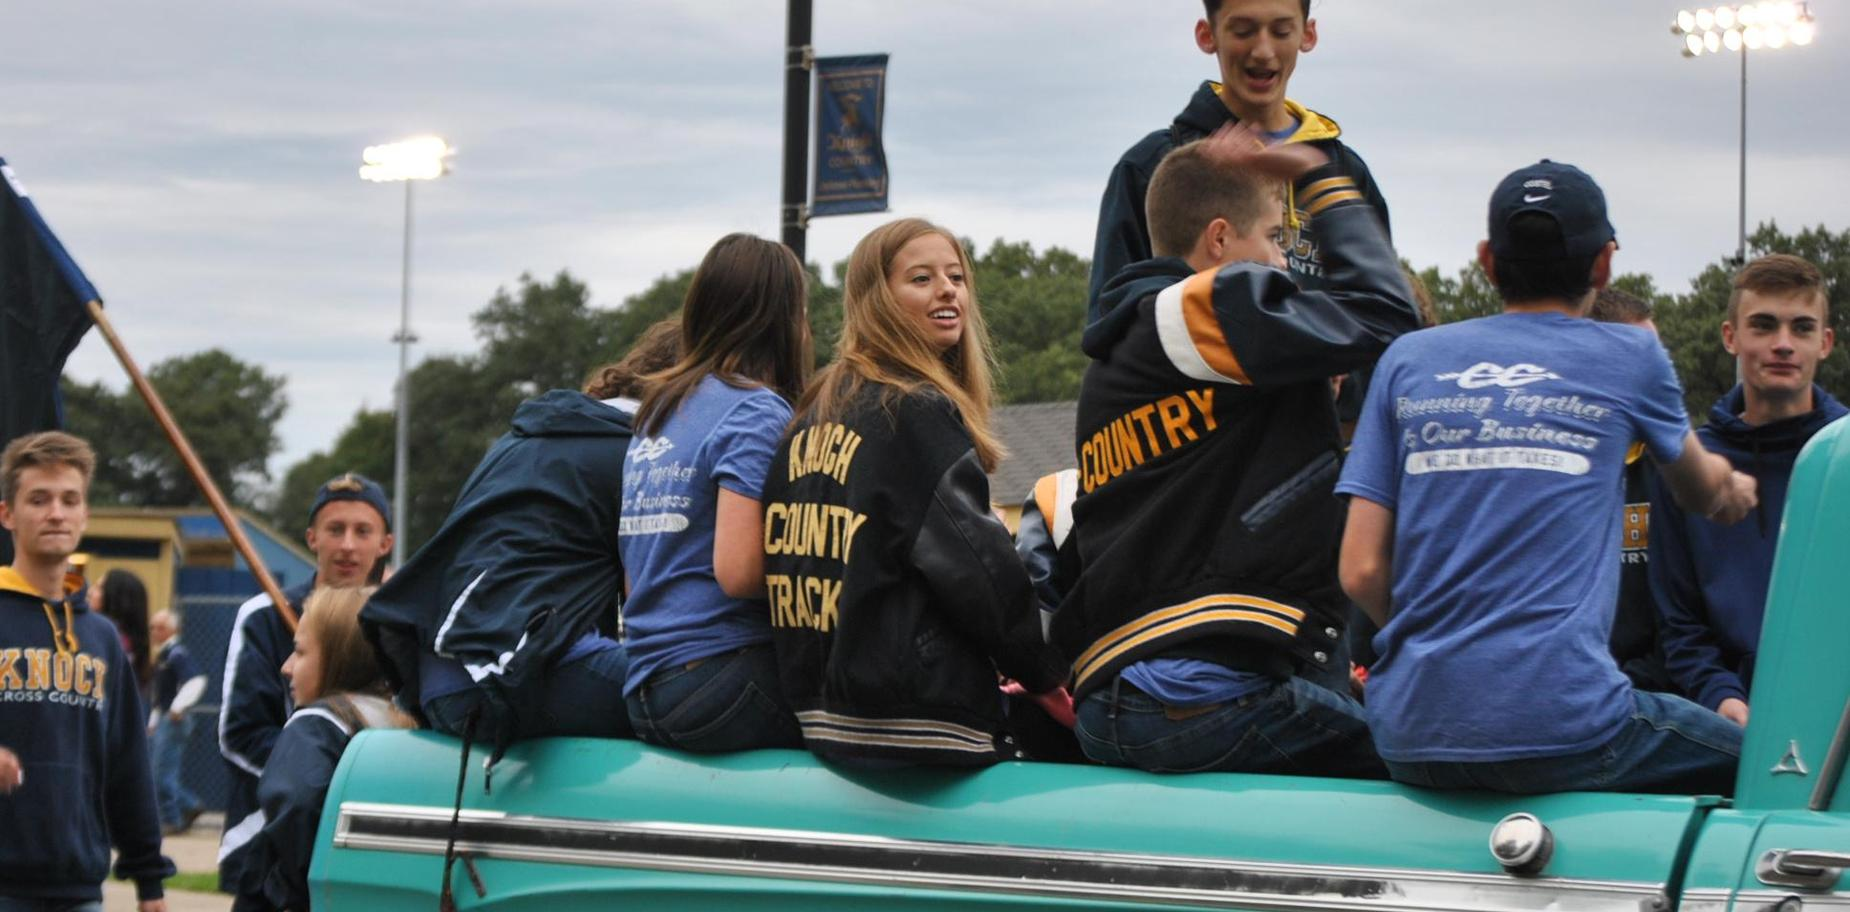 Knoch Cross Country in parade